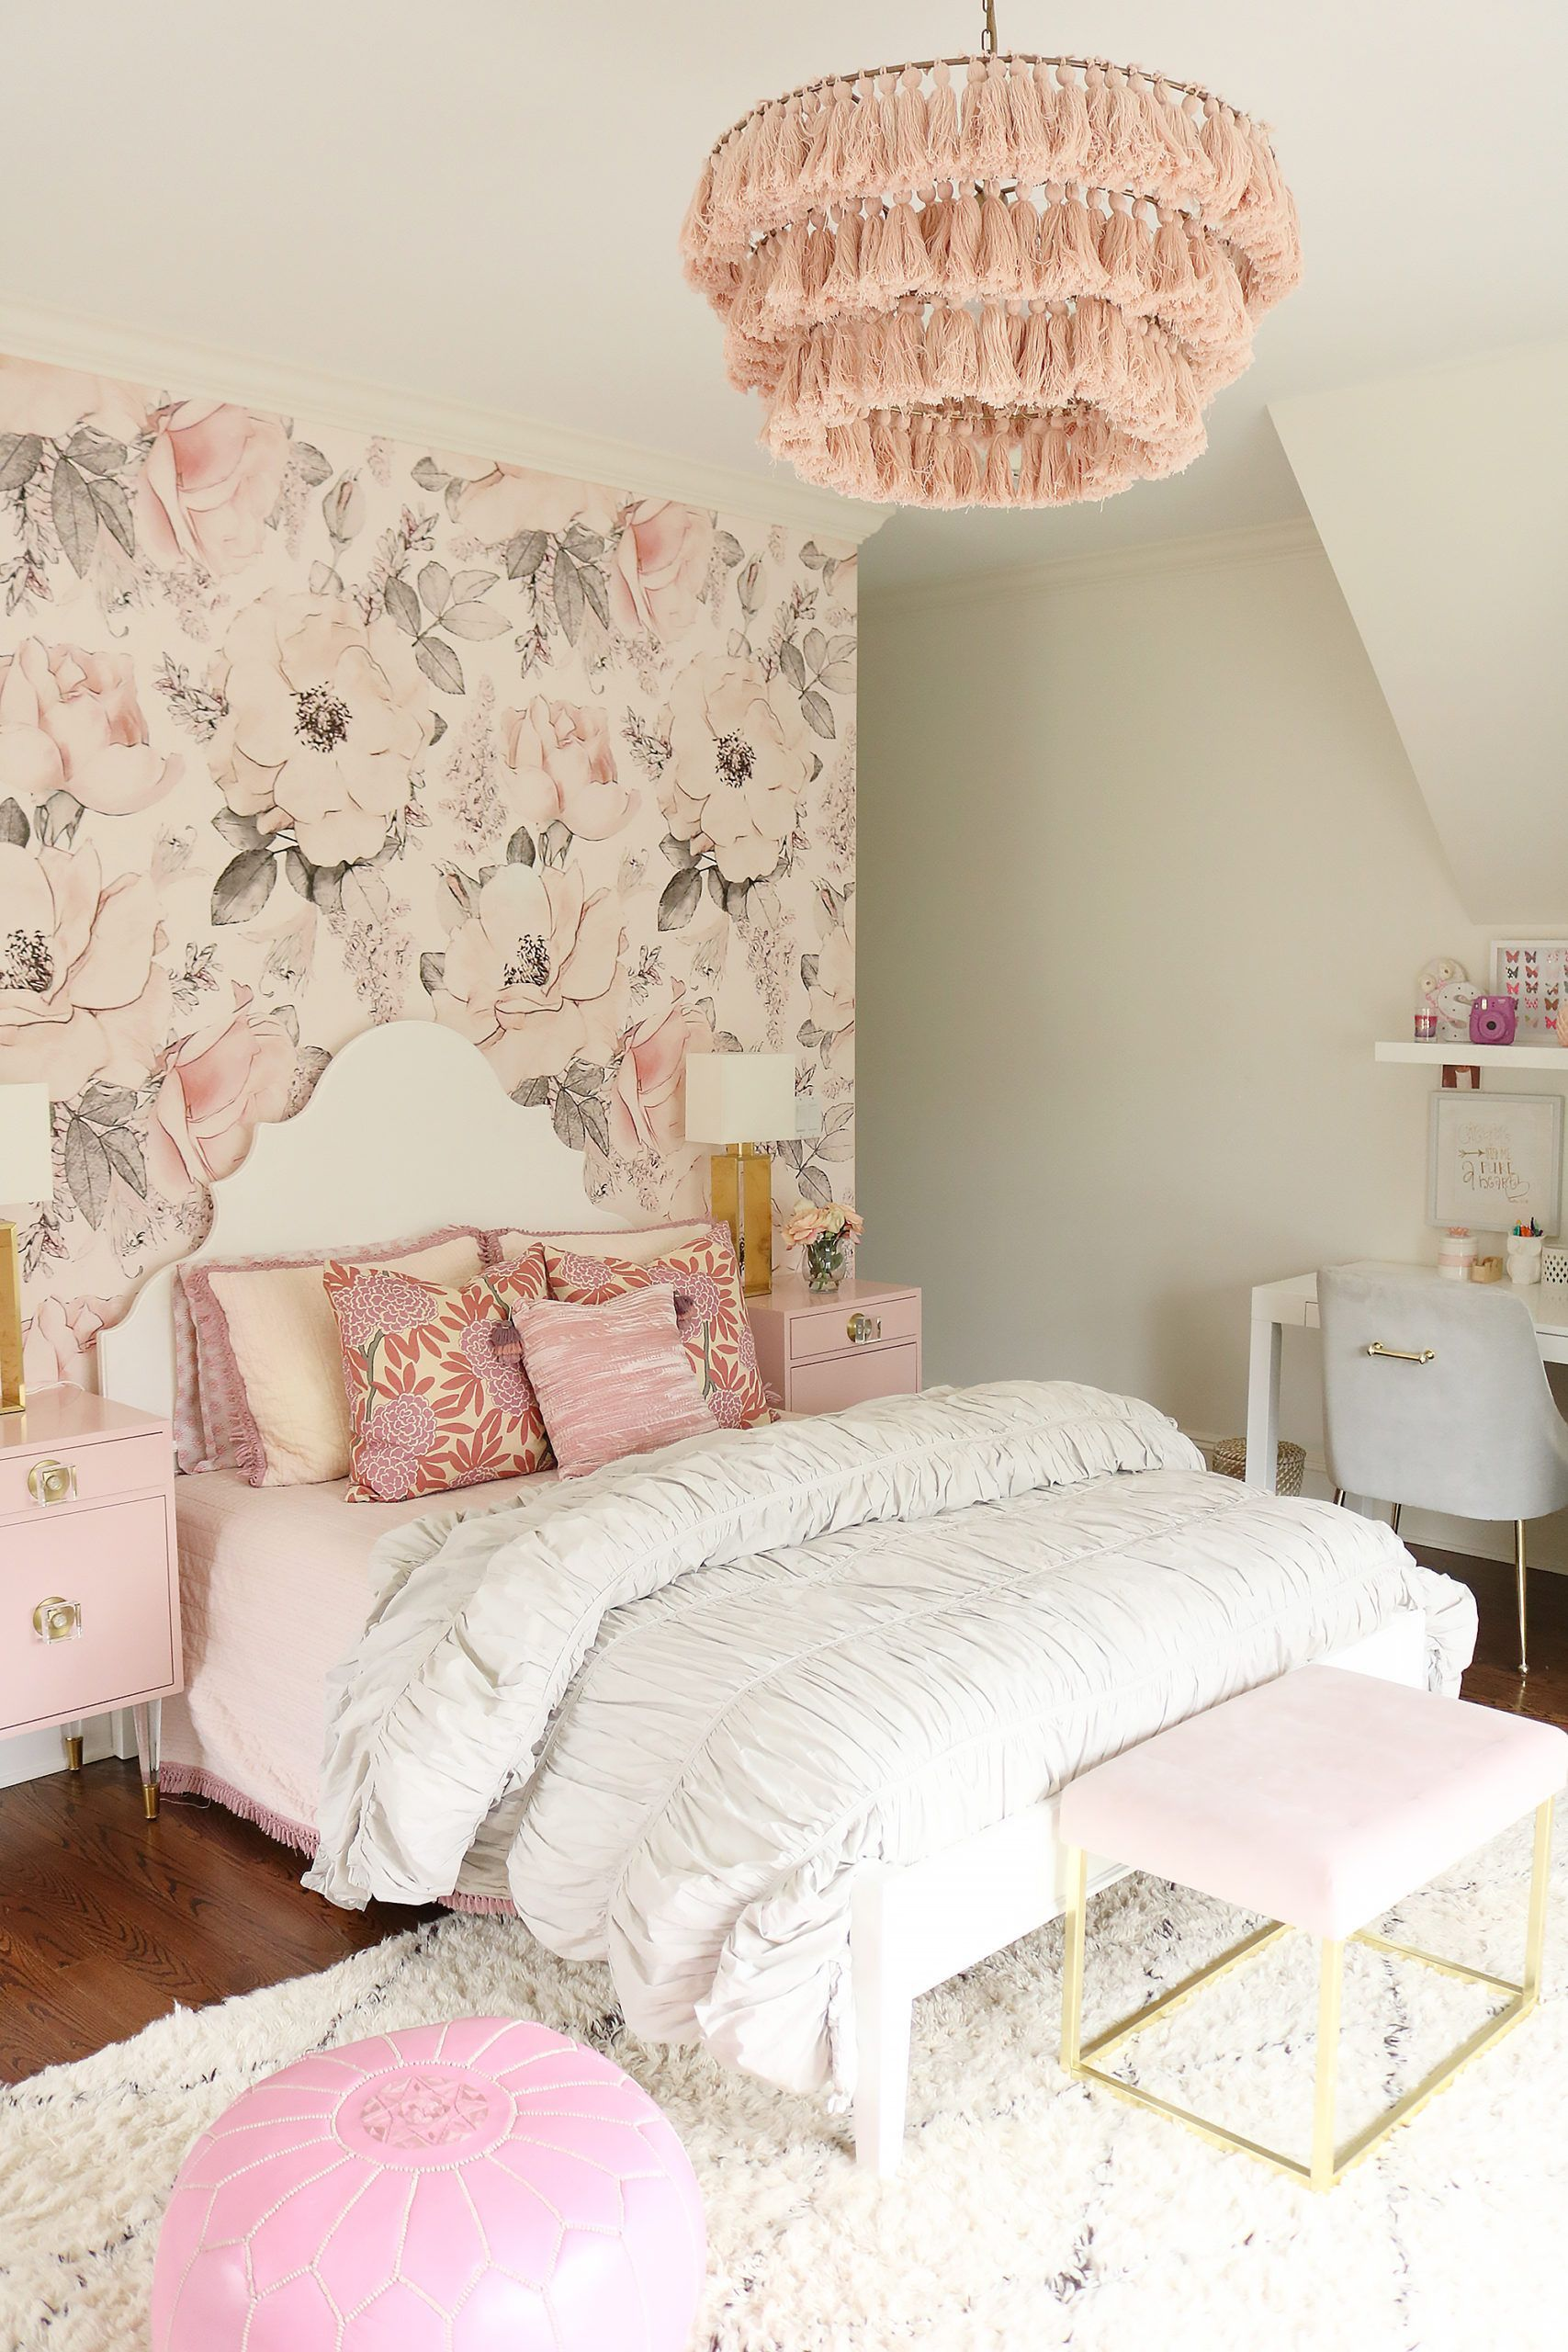 Cheap Minimalist Decor Saleprice 46 In 2020 Boho Chic Bedroom Floral Bedroom Pink Grey Room